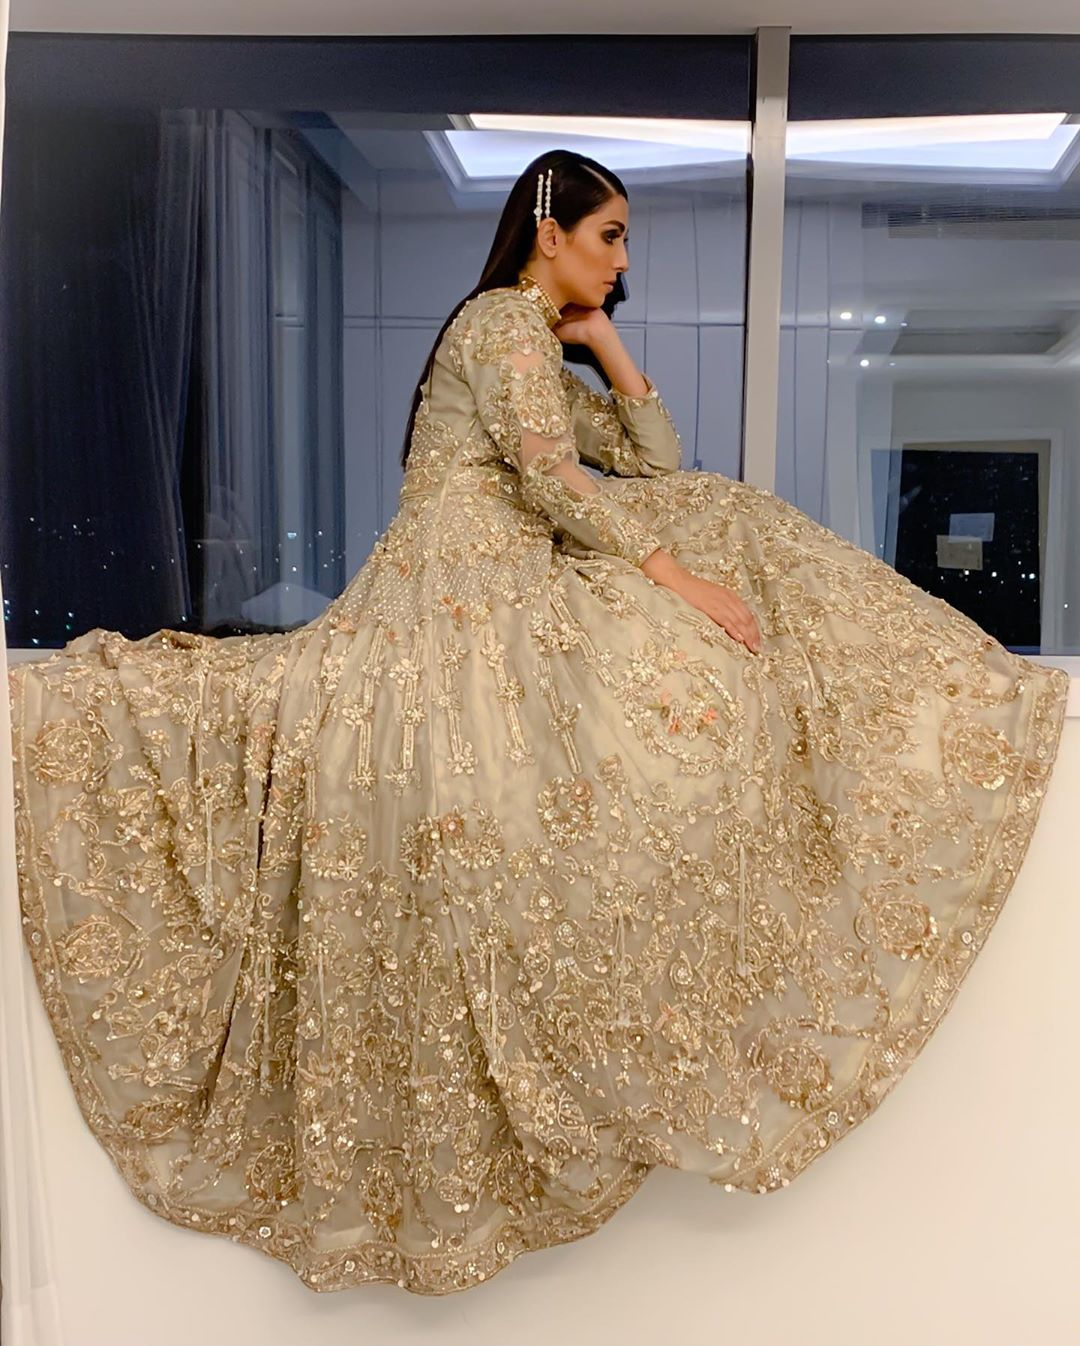 Awesome Pictures of Ayeza Khan in Bridal Dress for PLBW 2019